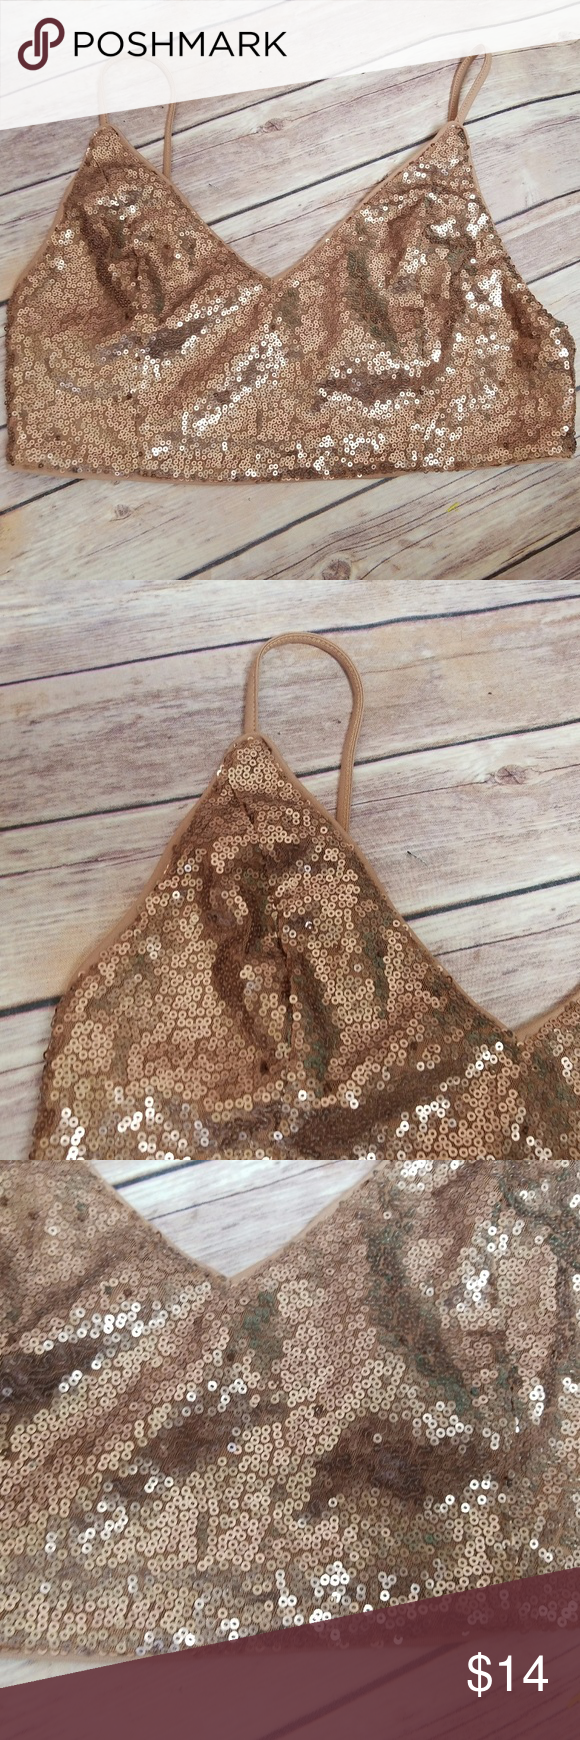 0f45324ad86a5b F21 Forever 21 Gold Sequin Glimmer Bra Bralette M F21 Forever 21 Gold Sequin  Glimmer Bra Bralette Crop Top Size Medium Excellent used condition- no  rips